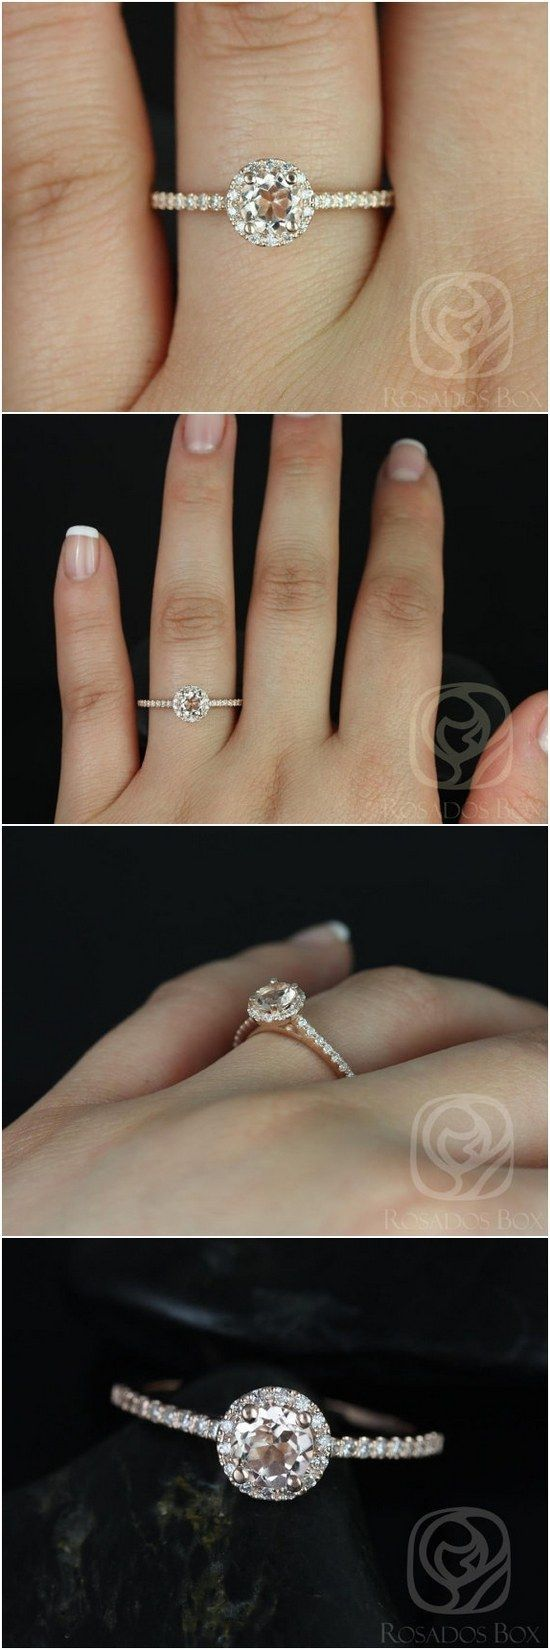 Amanda 5mm 14kt Rose Gold Round Morganite and Diamonds Halo Engagement Ring / http://www.deerpearlflowers.com/inexpensive-engagement-rings-under-1000/